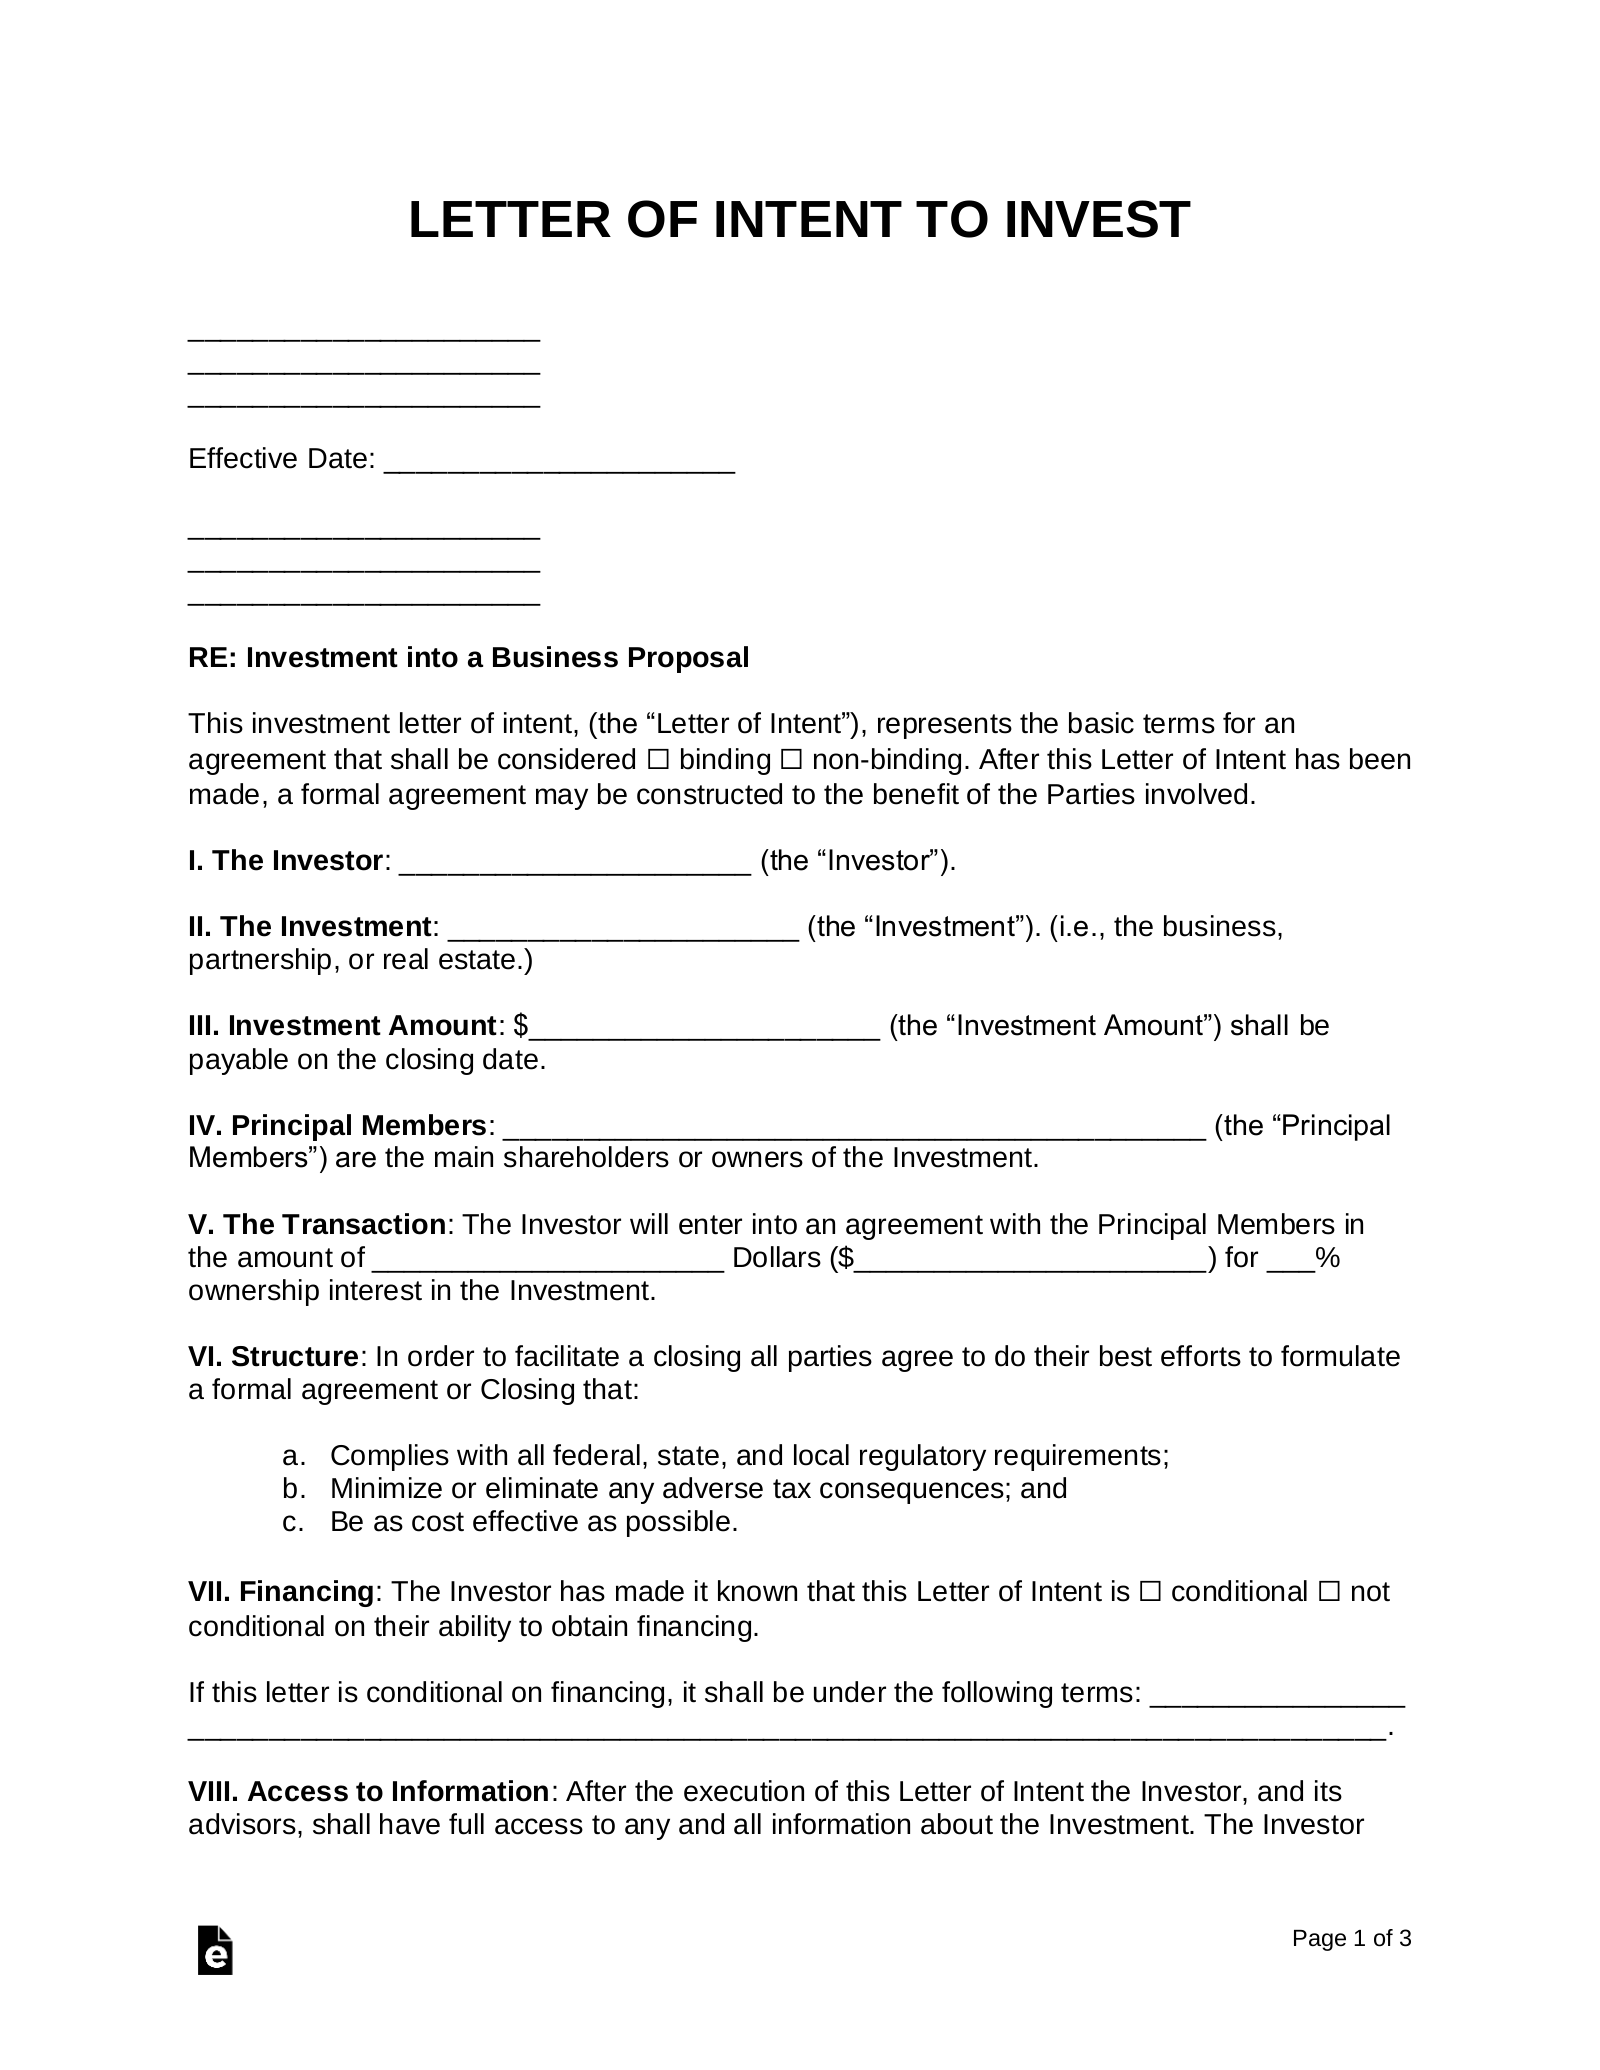 Investment Letter Of Intent.Free Business Proposal Investment Letter Of Intent